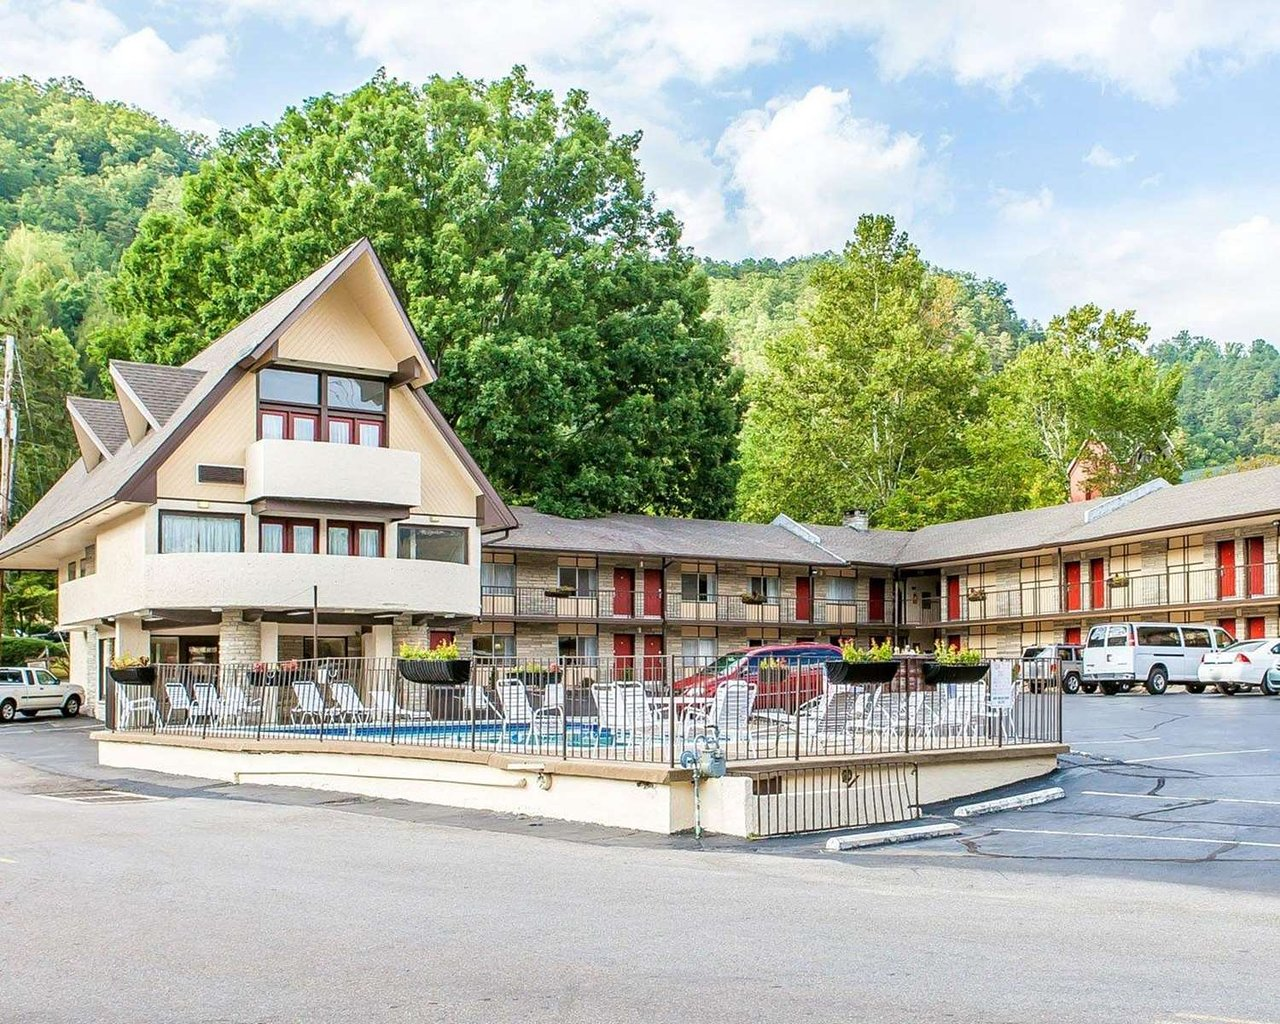 econo lodge inn suites on the river 71 1 1 0 updated 2019 rh tripadvisor com hotels in gatlinburg tn with a view